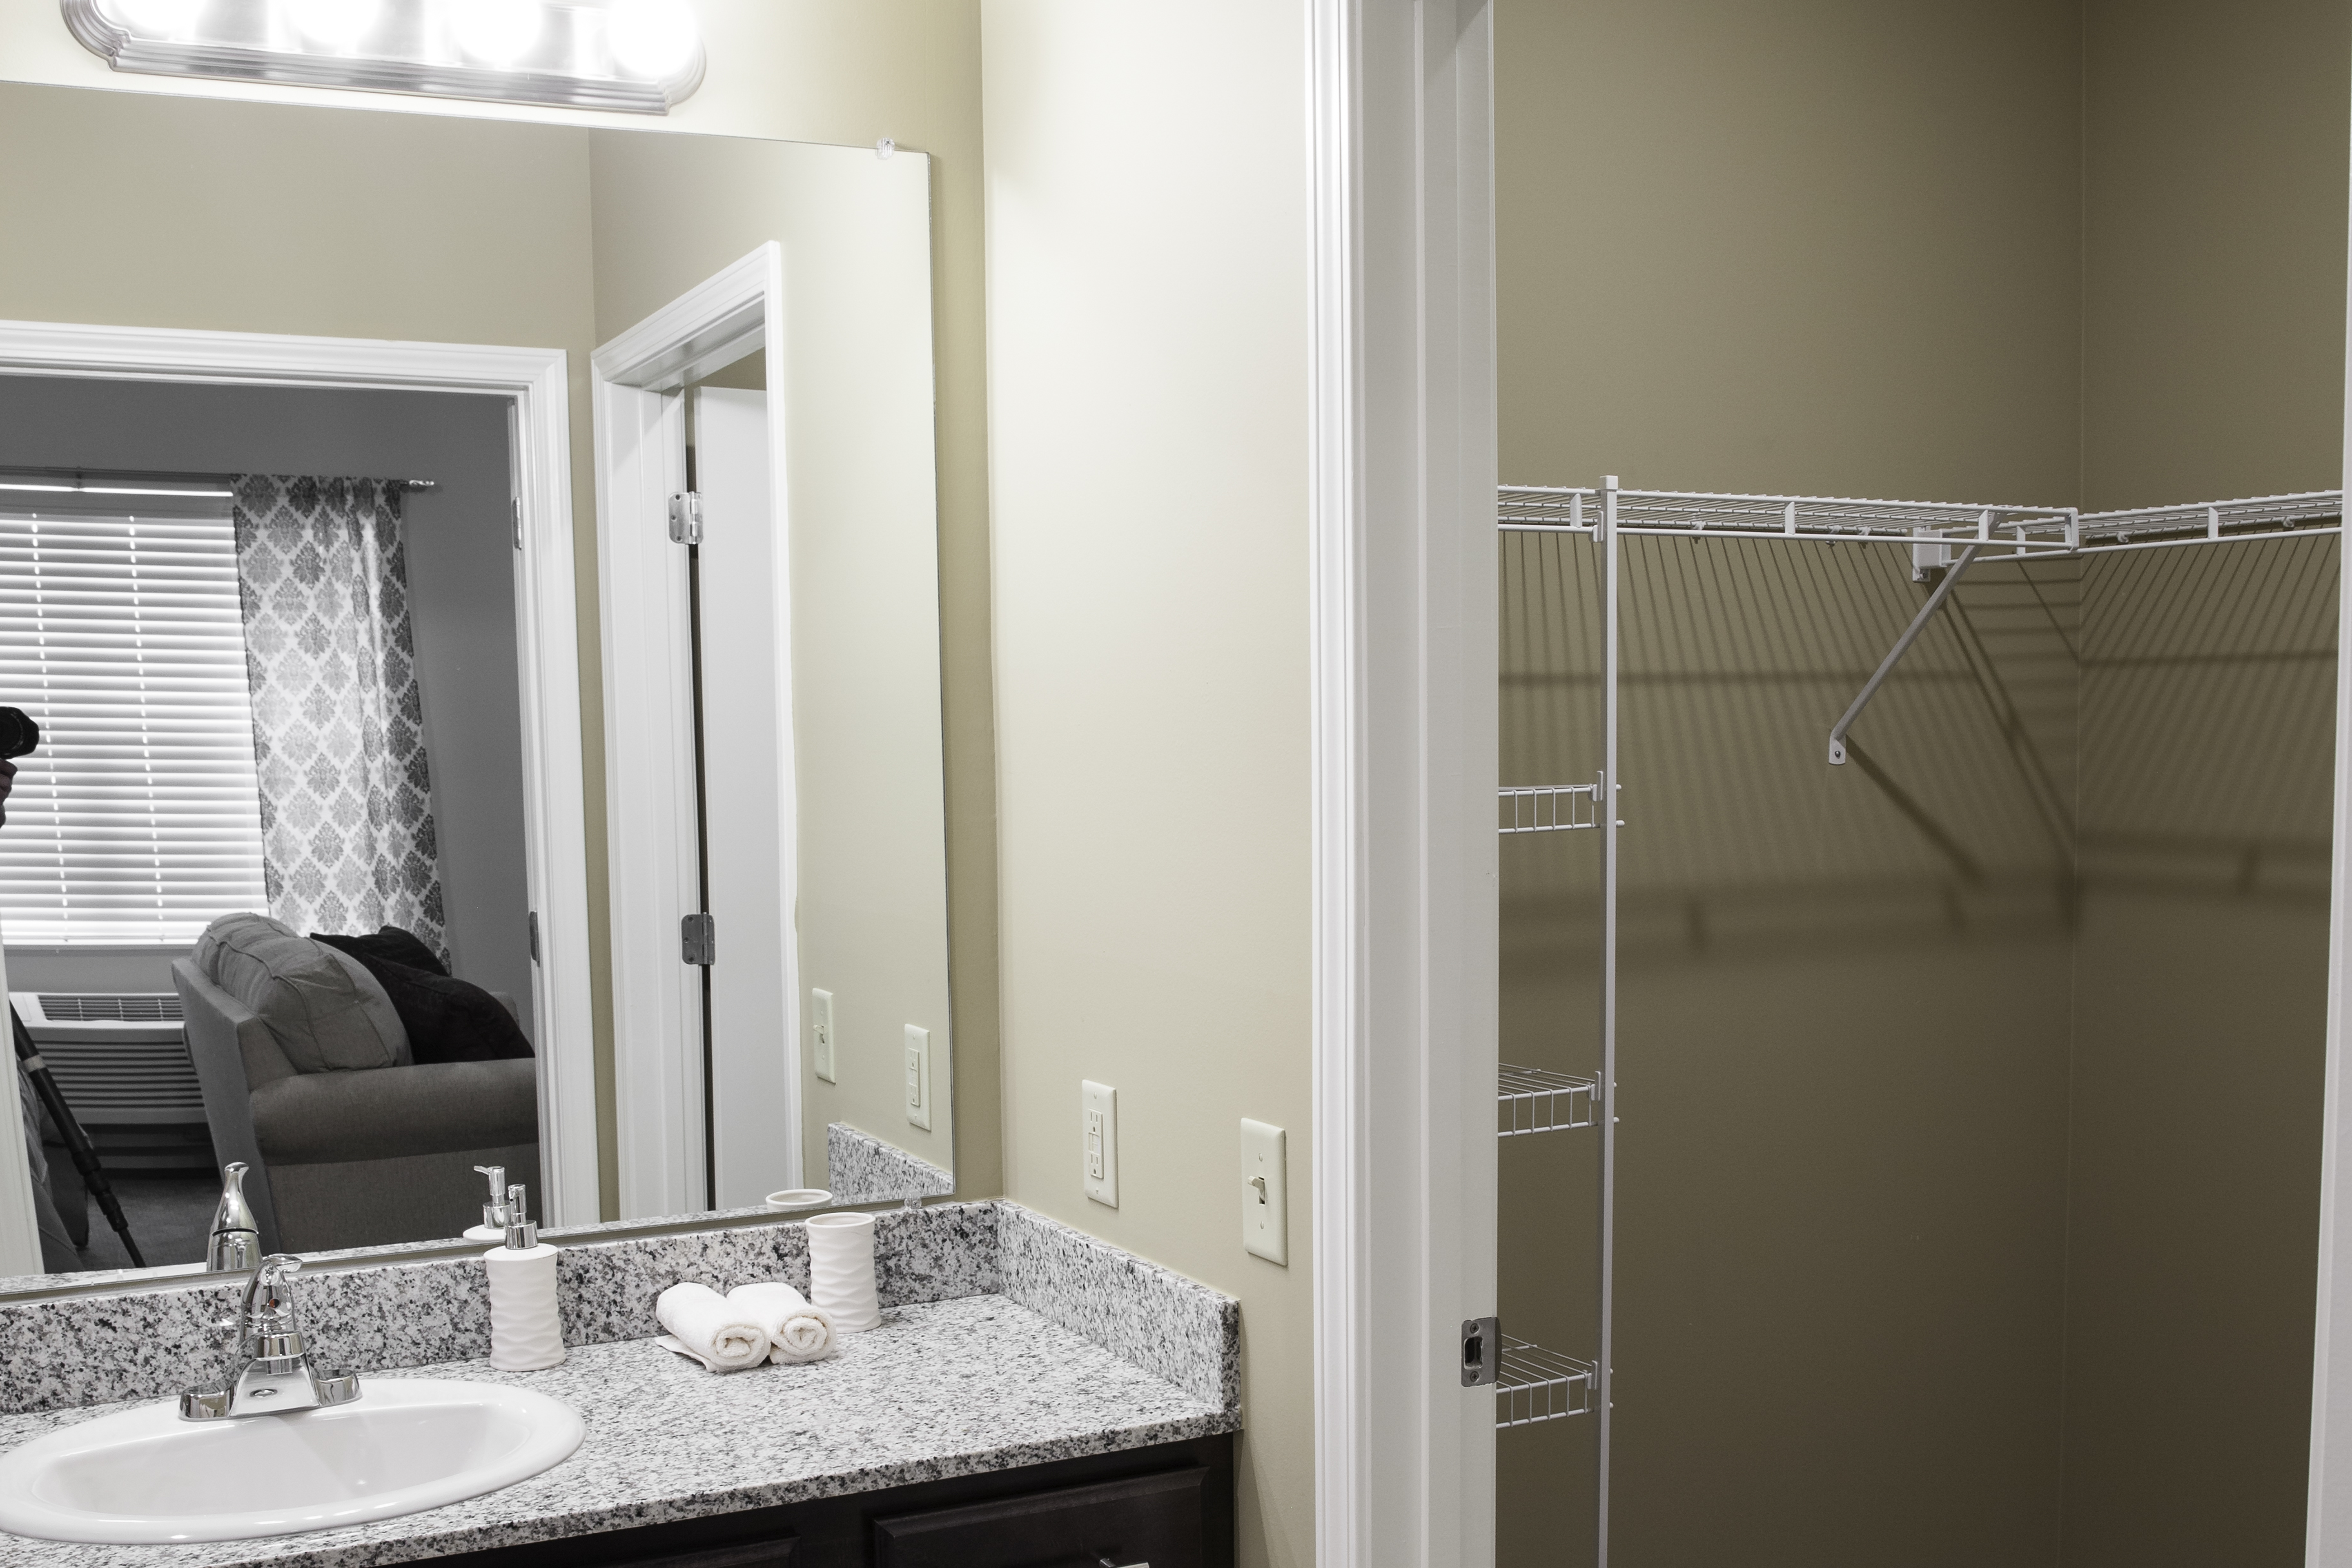 Aspen of Brookhaven Room Features: single and double occupancy suites